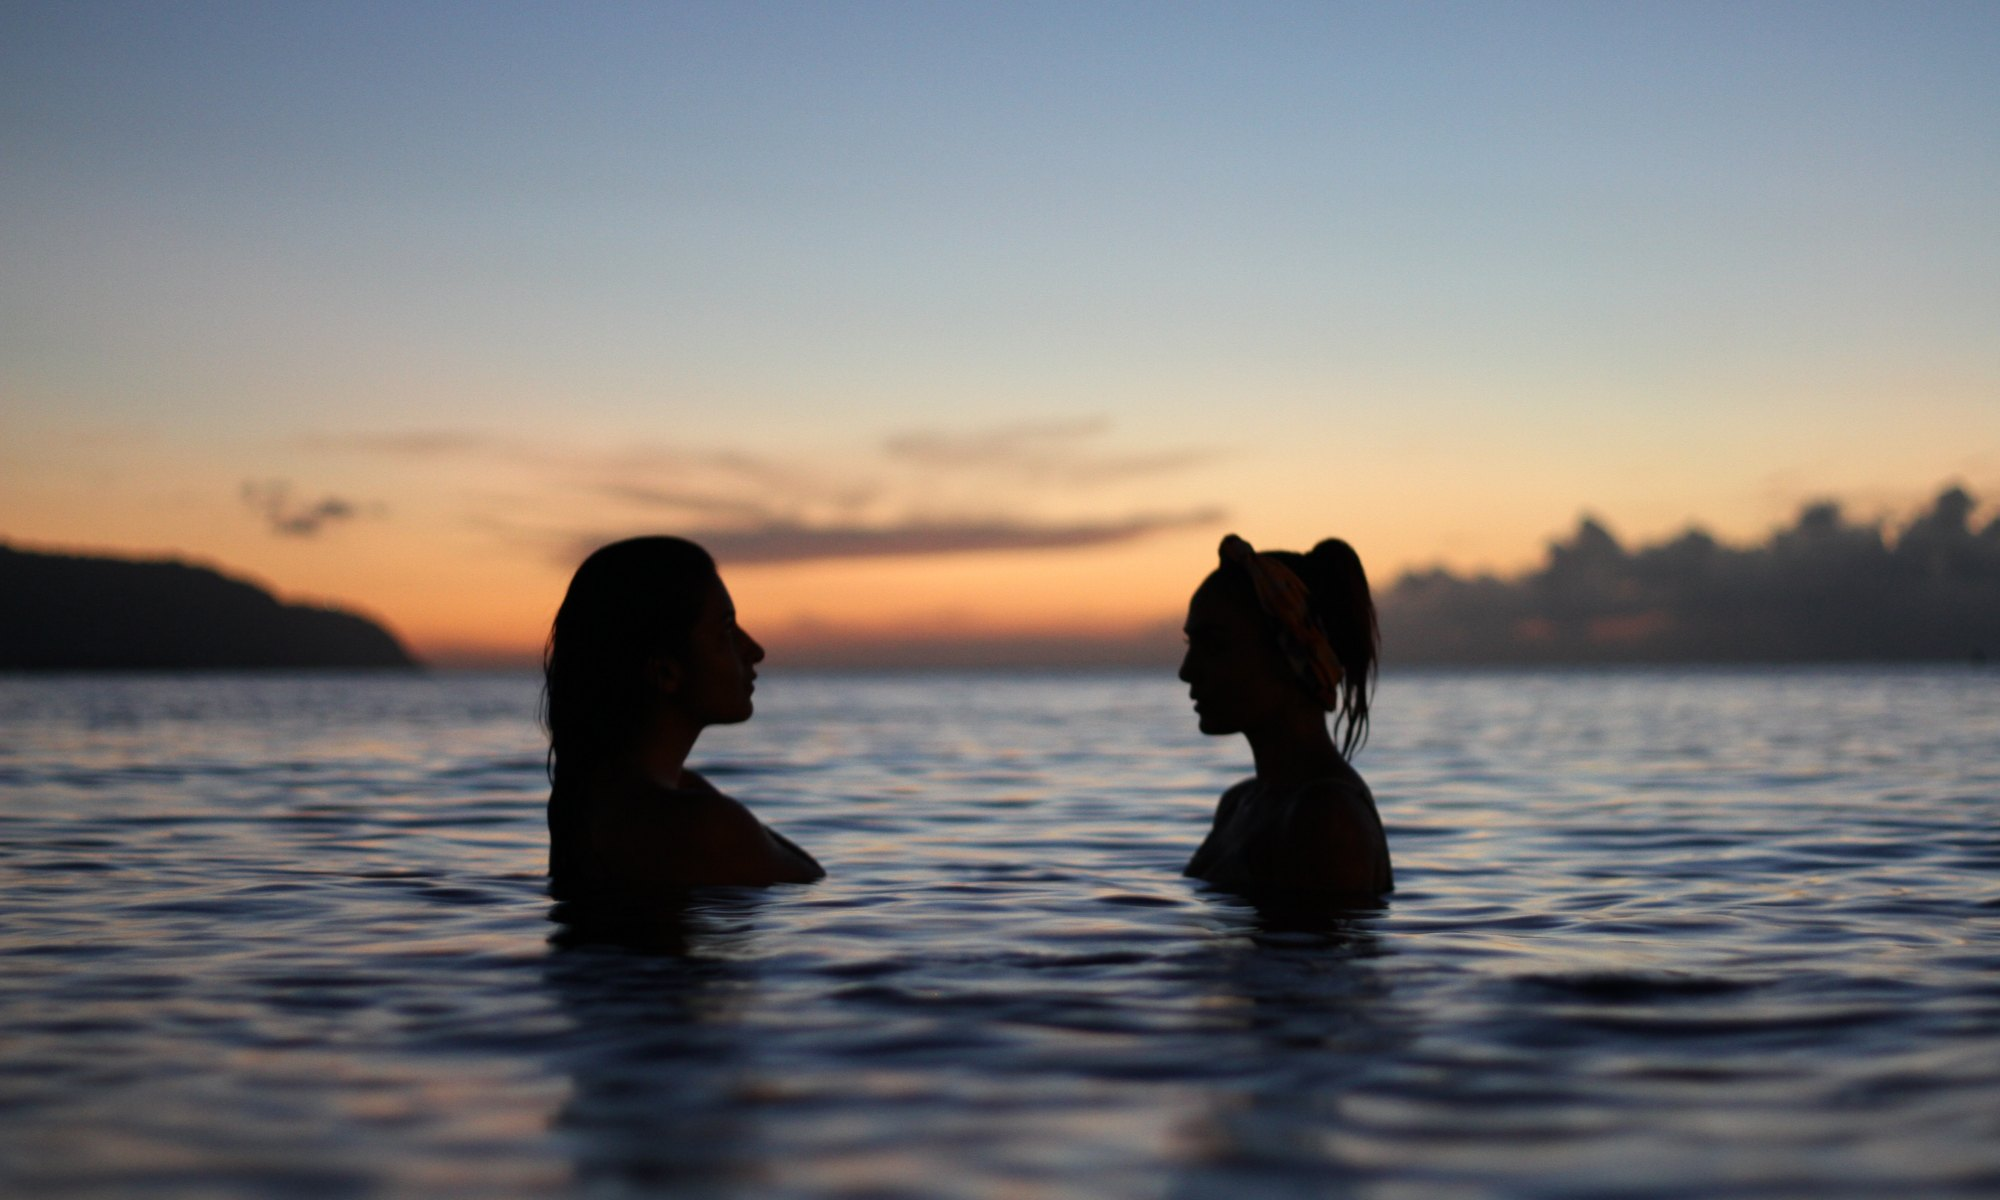 Silhouette of two women listening to each other in water